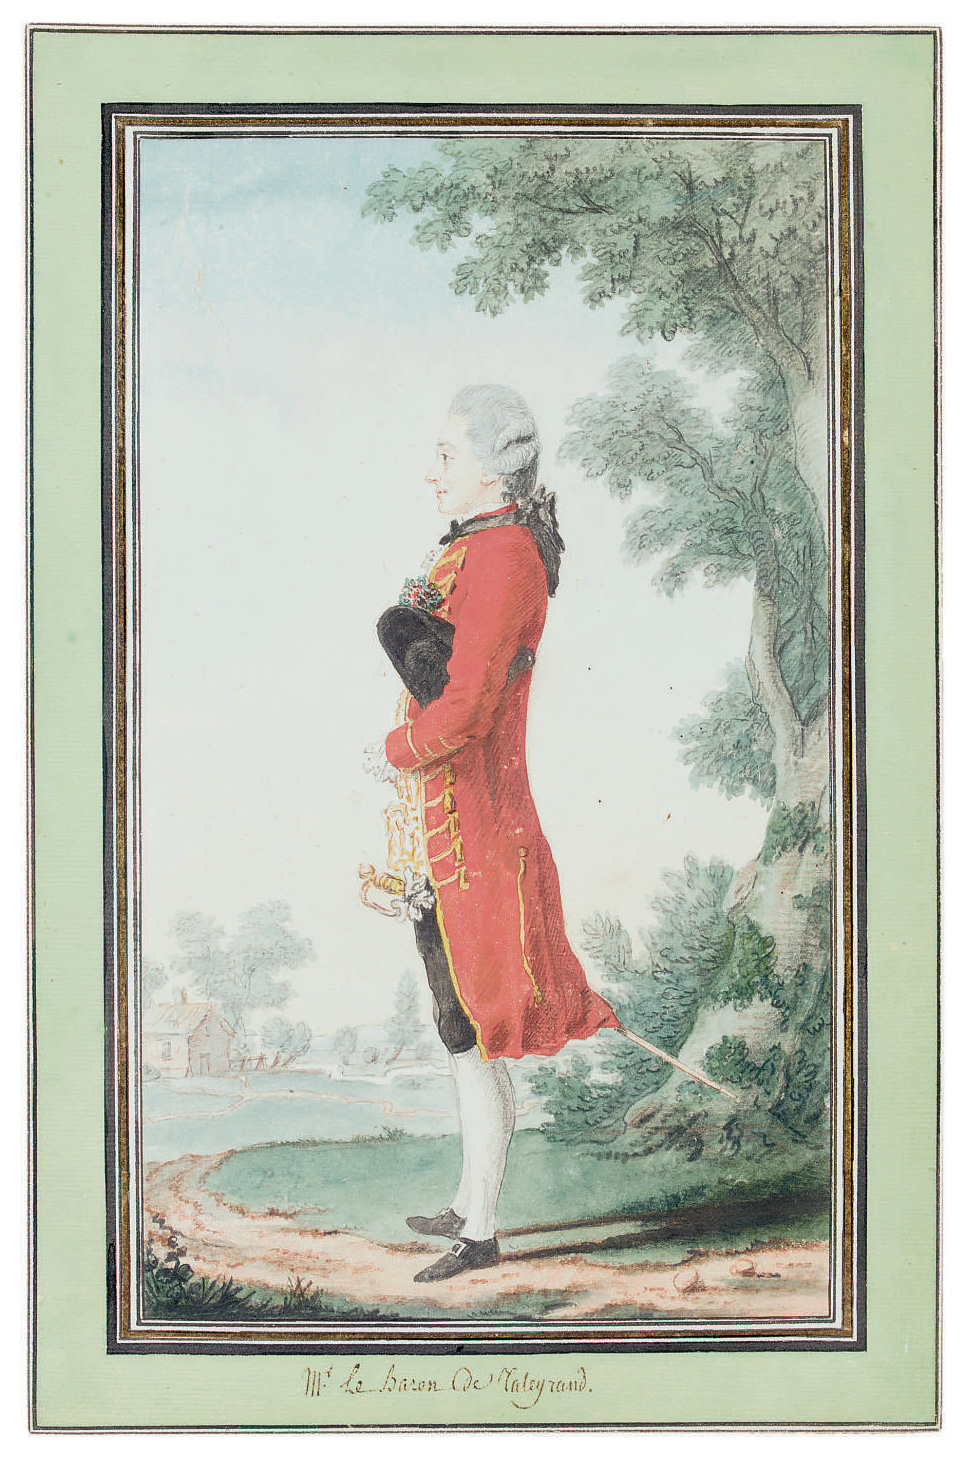 Portrait of the Baron de Talleyrand, full-length, in a landscape